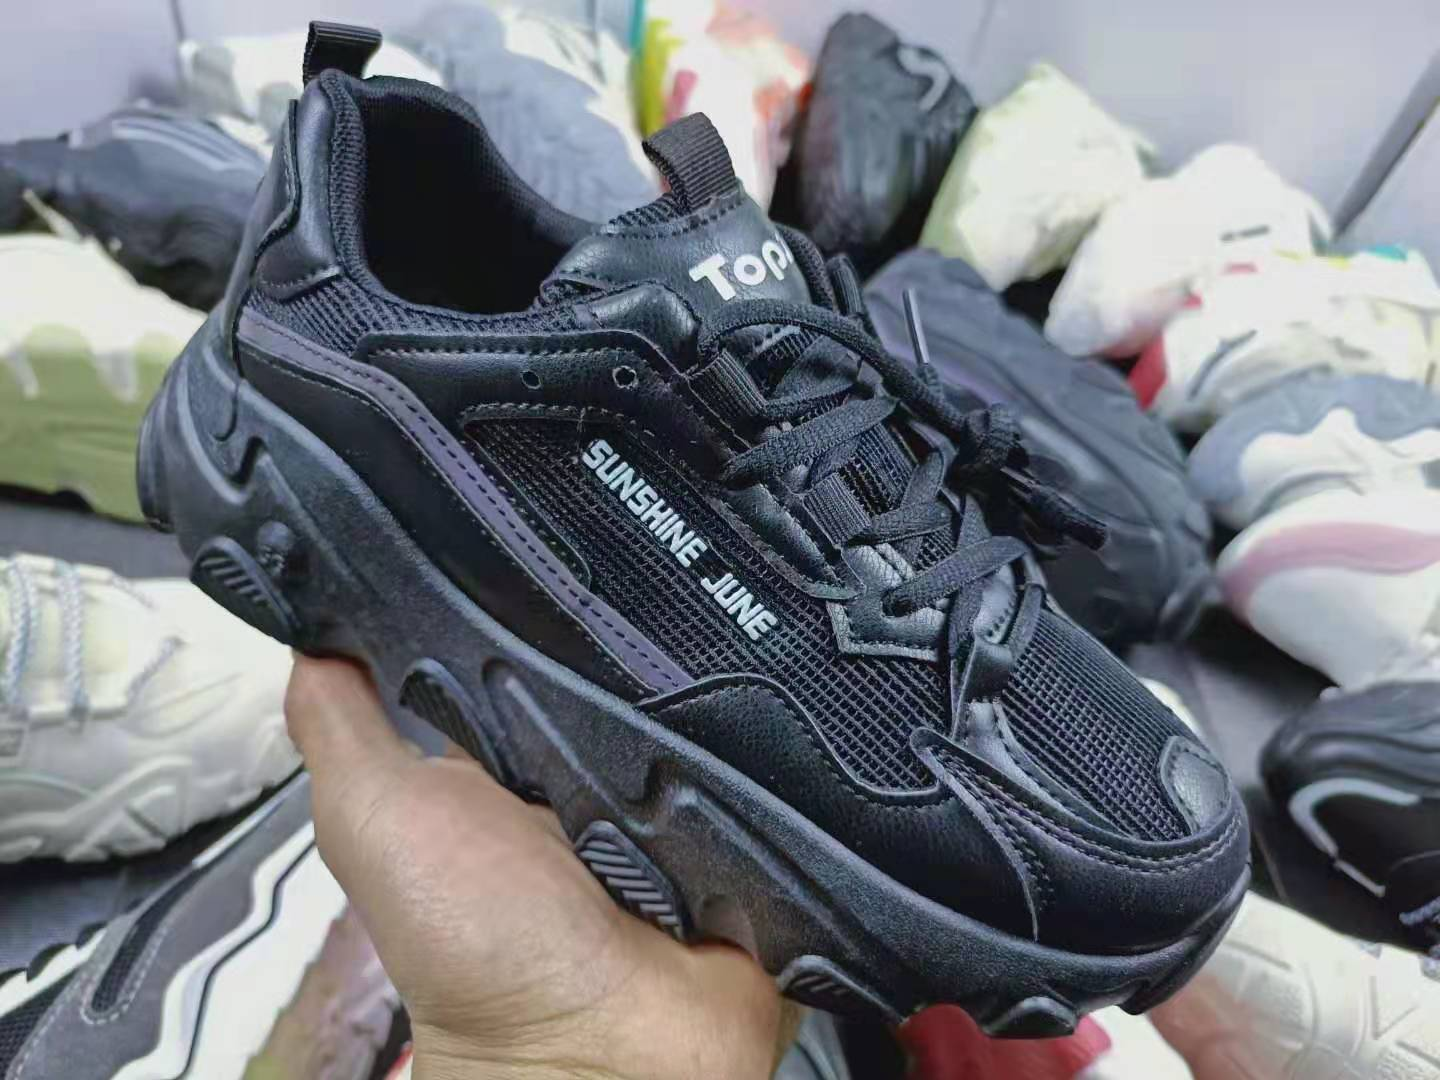 new fashion style breathe female shoes women shoes running sport sneakers mix model shoes stock outdoor high quality